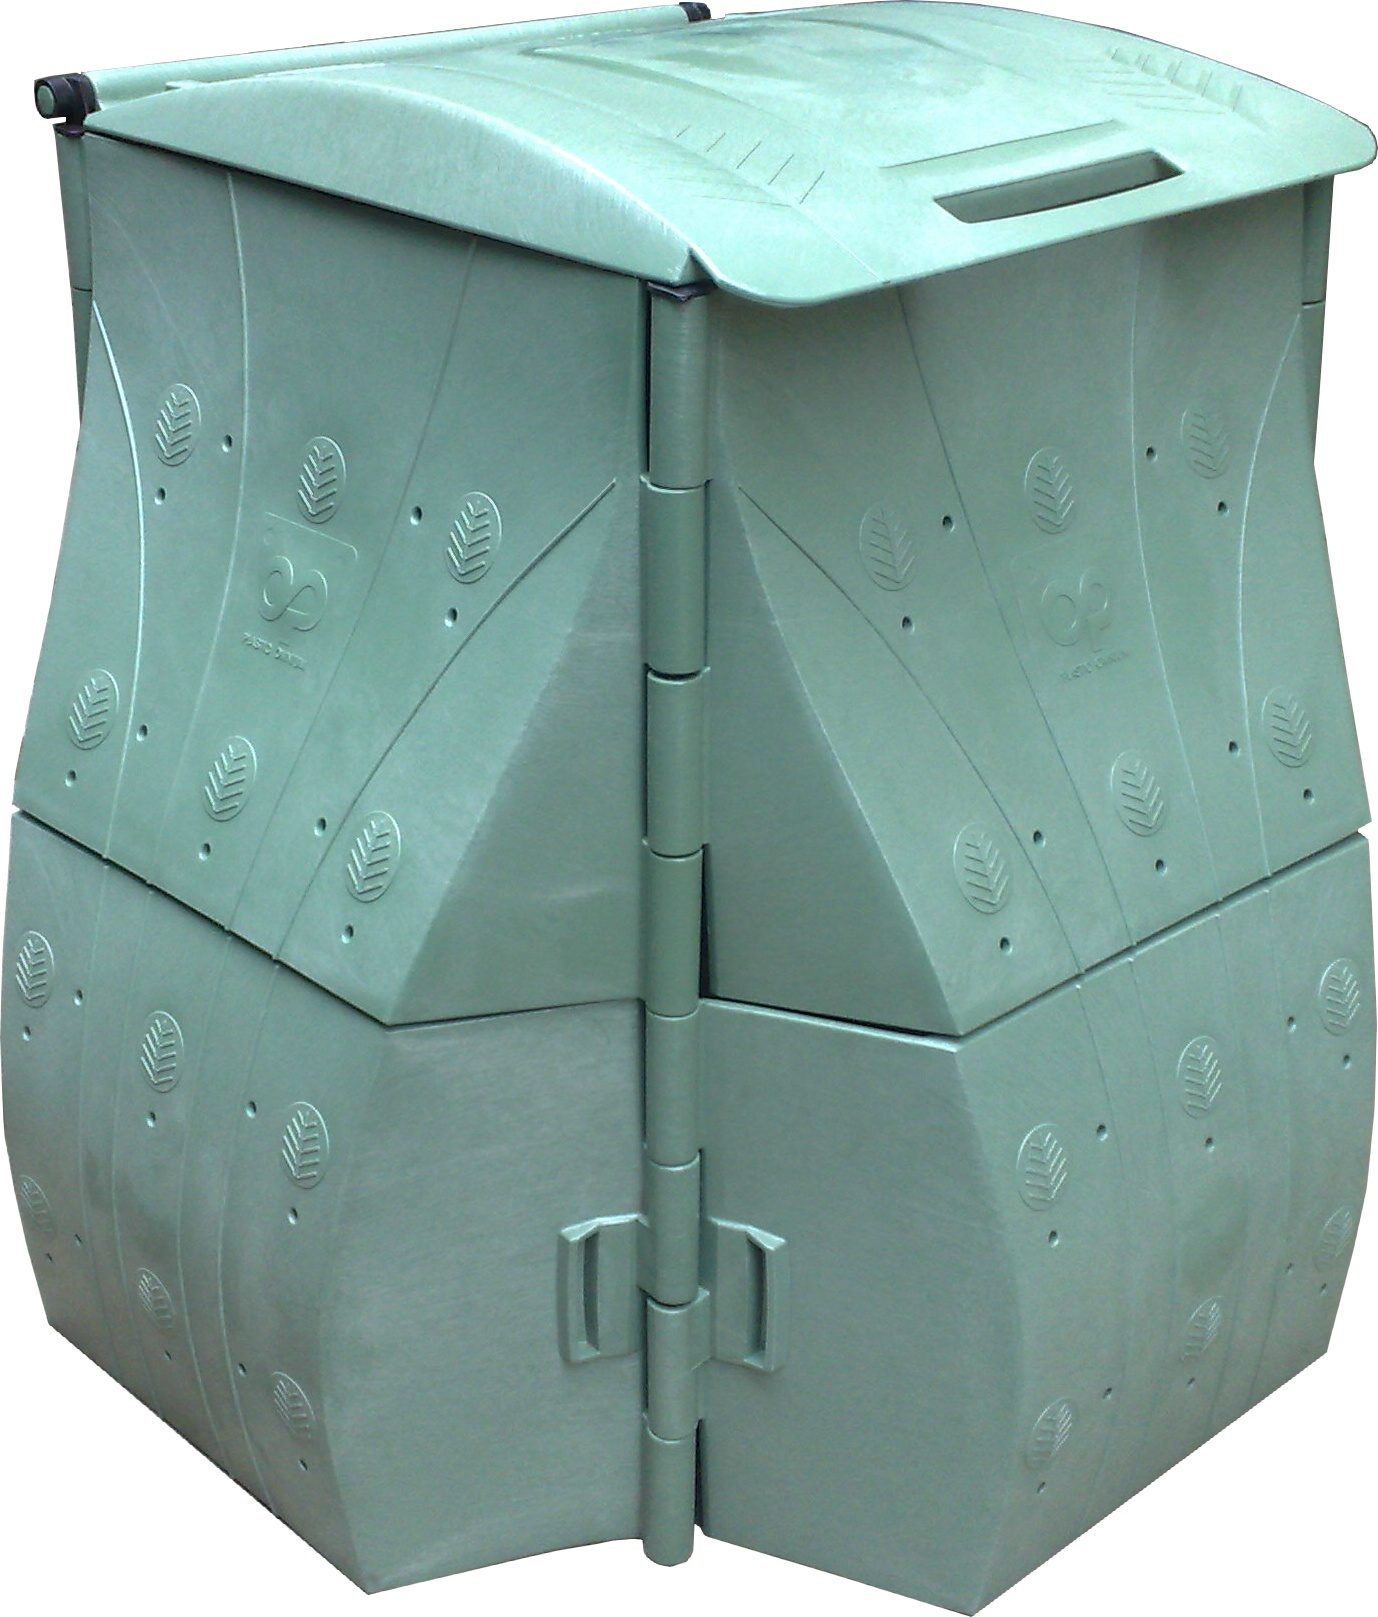 360 Litres French Made High Density Polyethylene Compost Bin